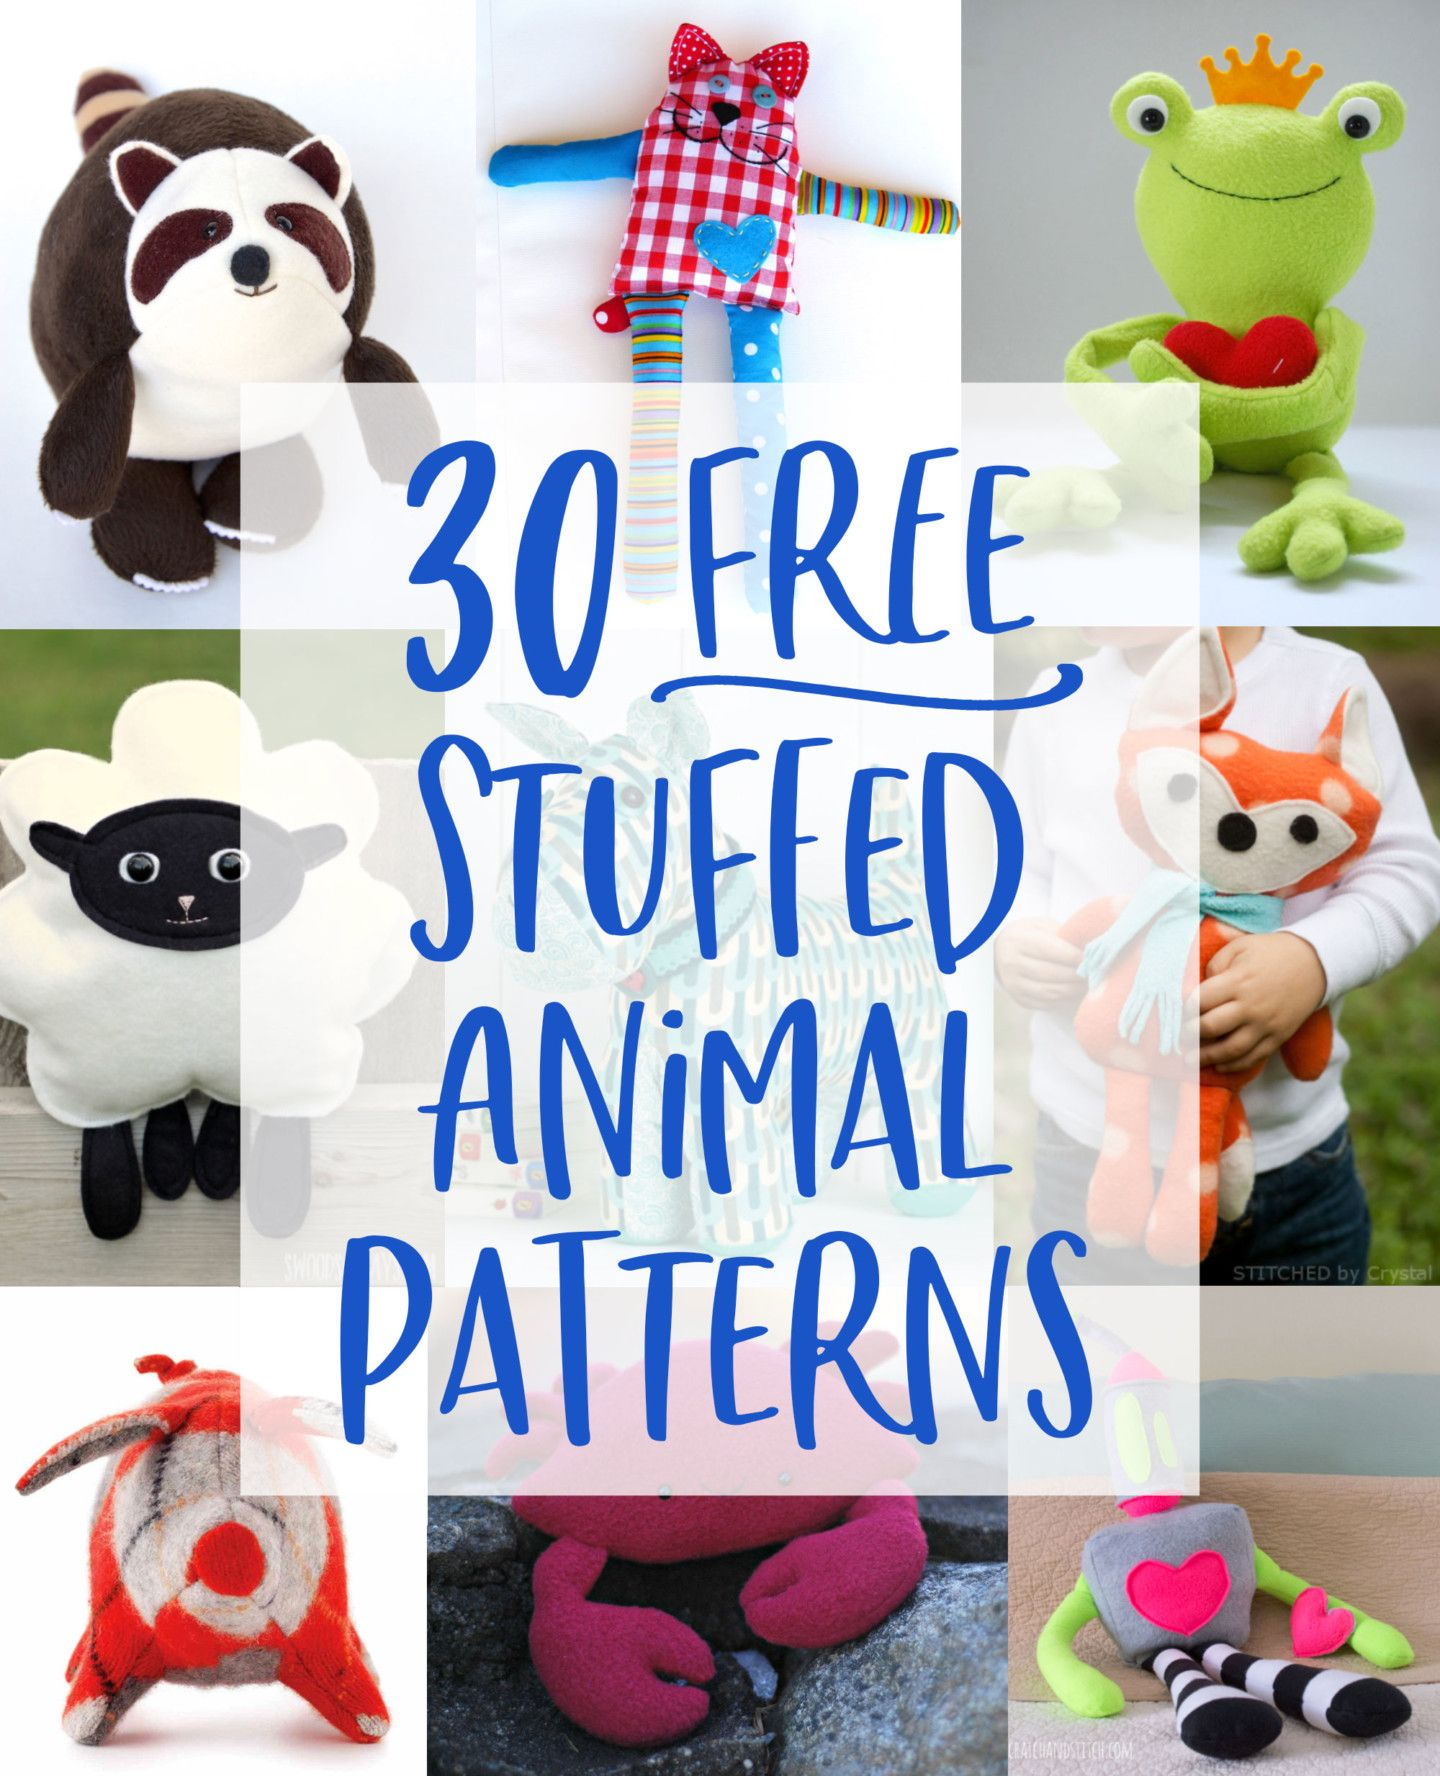 30 FREE Stuffed Animal Patterns with Tutorials to Bring to Life